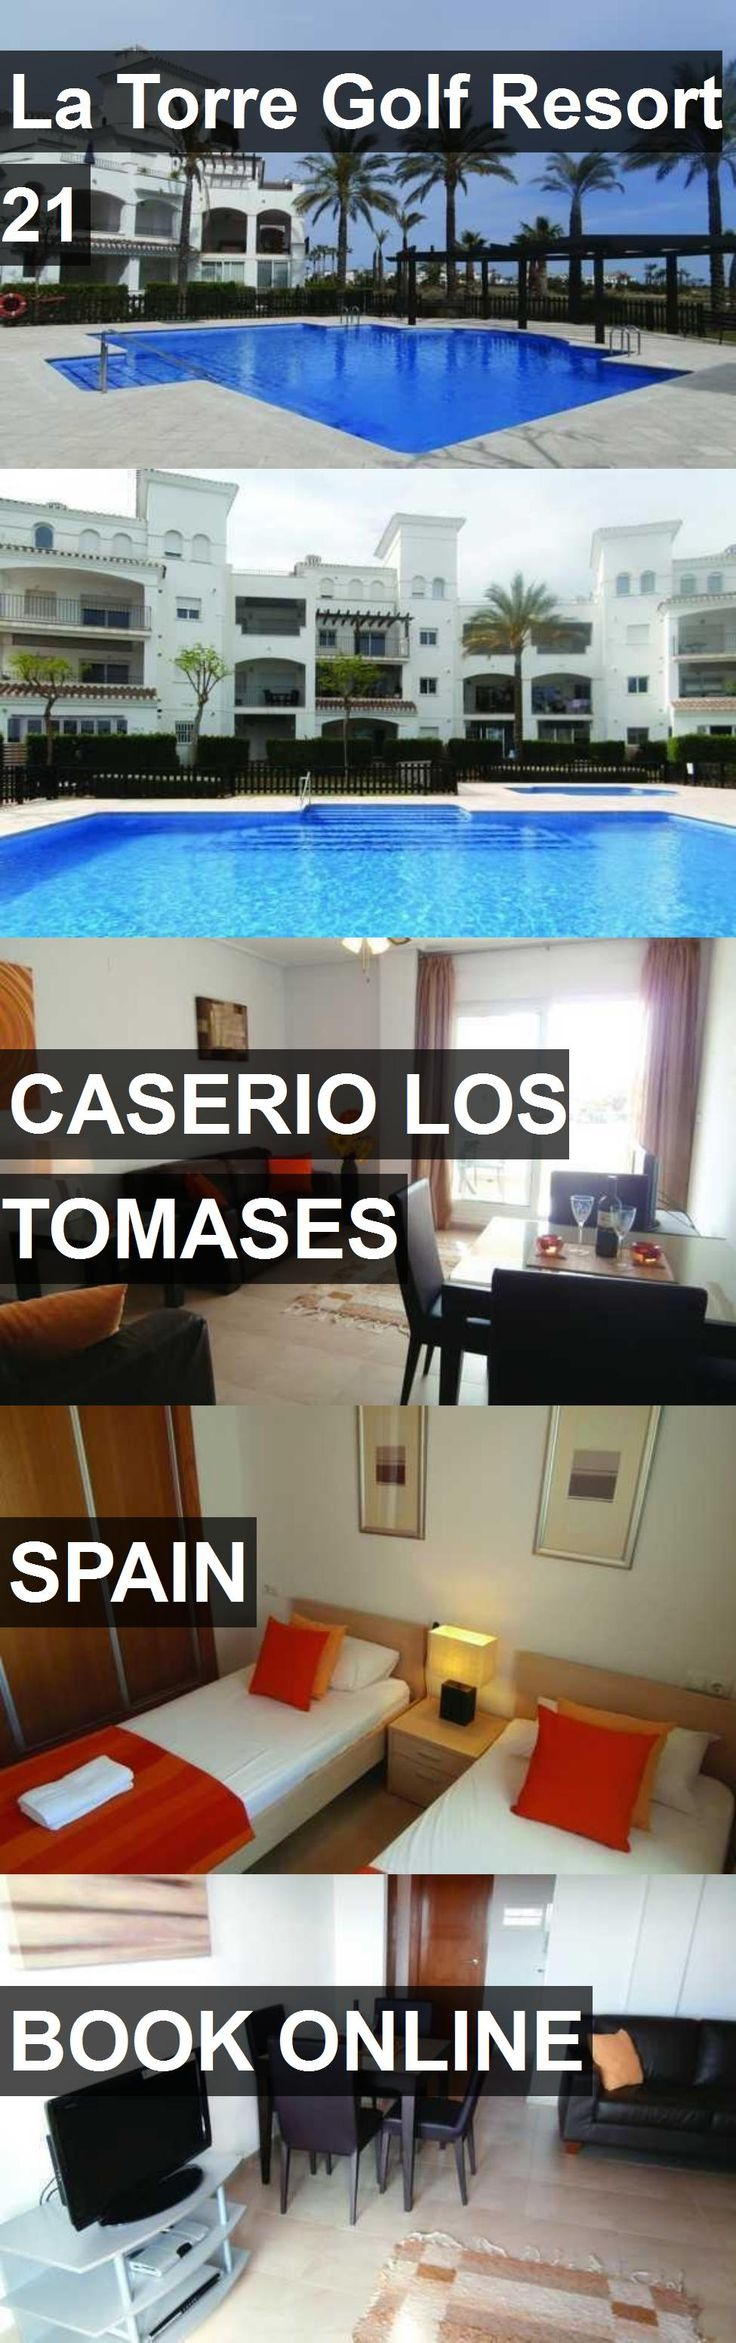 Hotel La Torre Golf Resort 21 in Caserio Los Tomases, Spain. For more information, photos, reviews and best prices please follow the link. #Spain #CaserioLosTomases #LaTorreGolfResort21 #hotel #travel #vacation